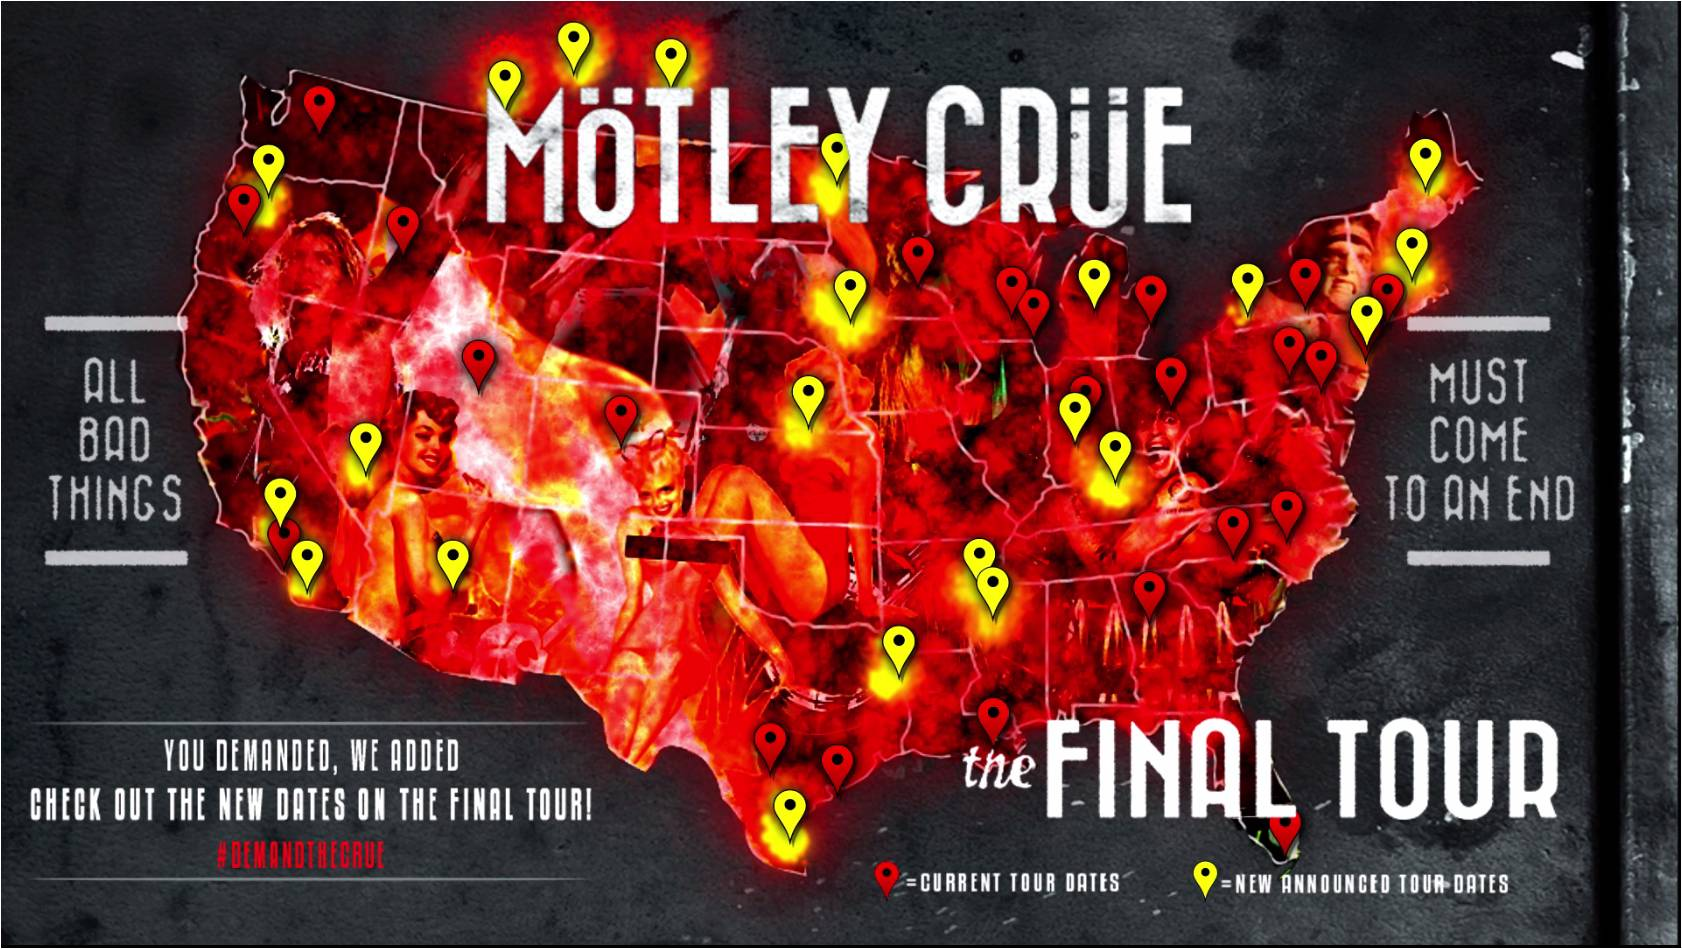 Motley Crue_Demand Final Image